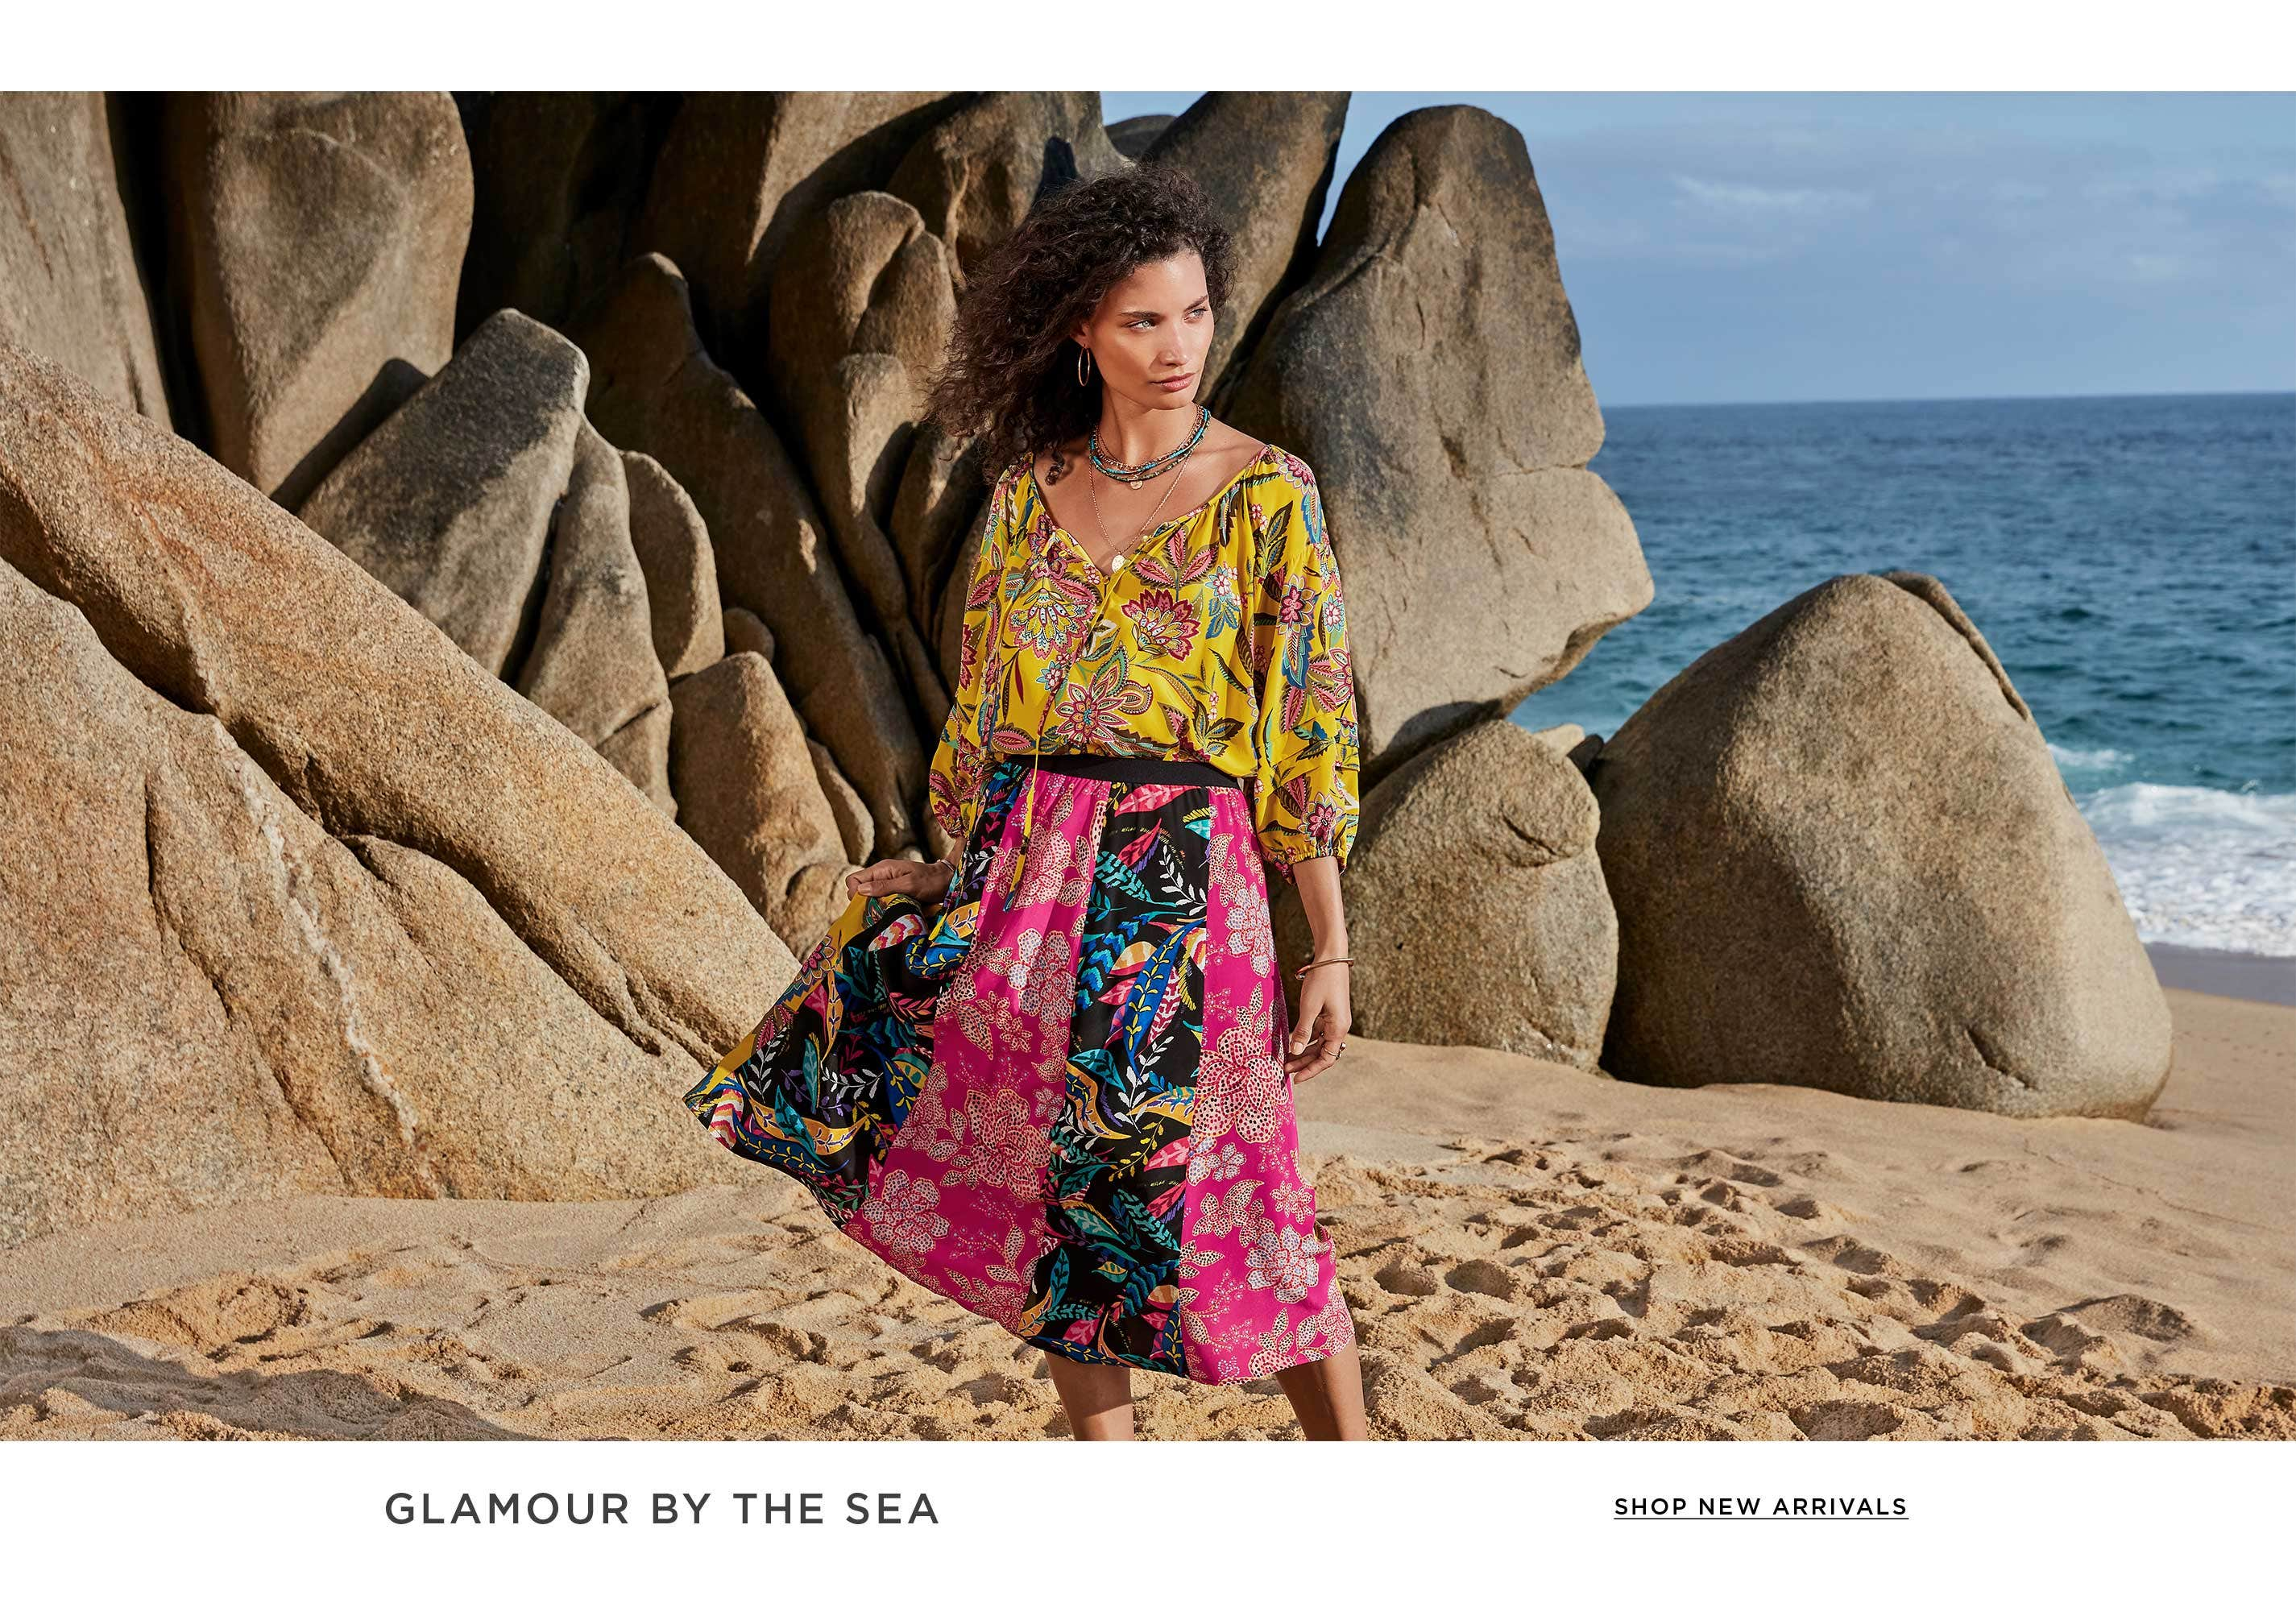 Glamour by the Sea - Shop New Arrivals